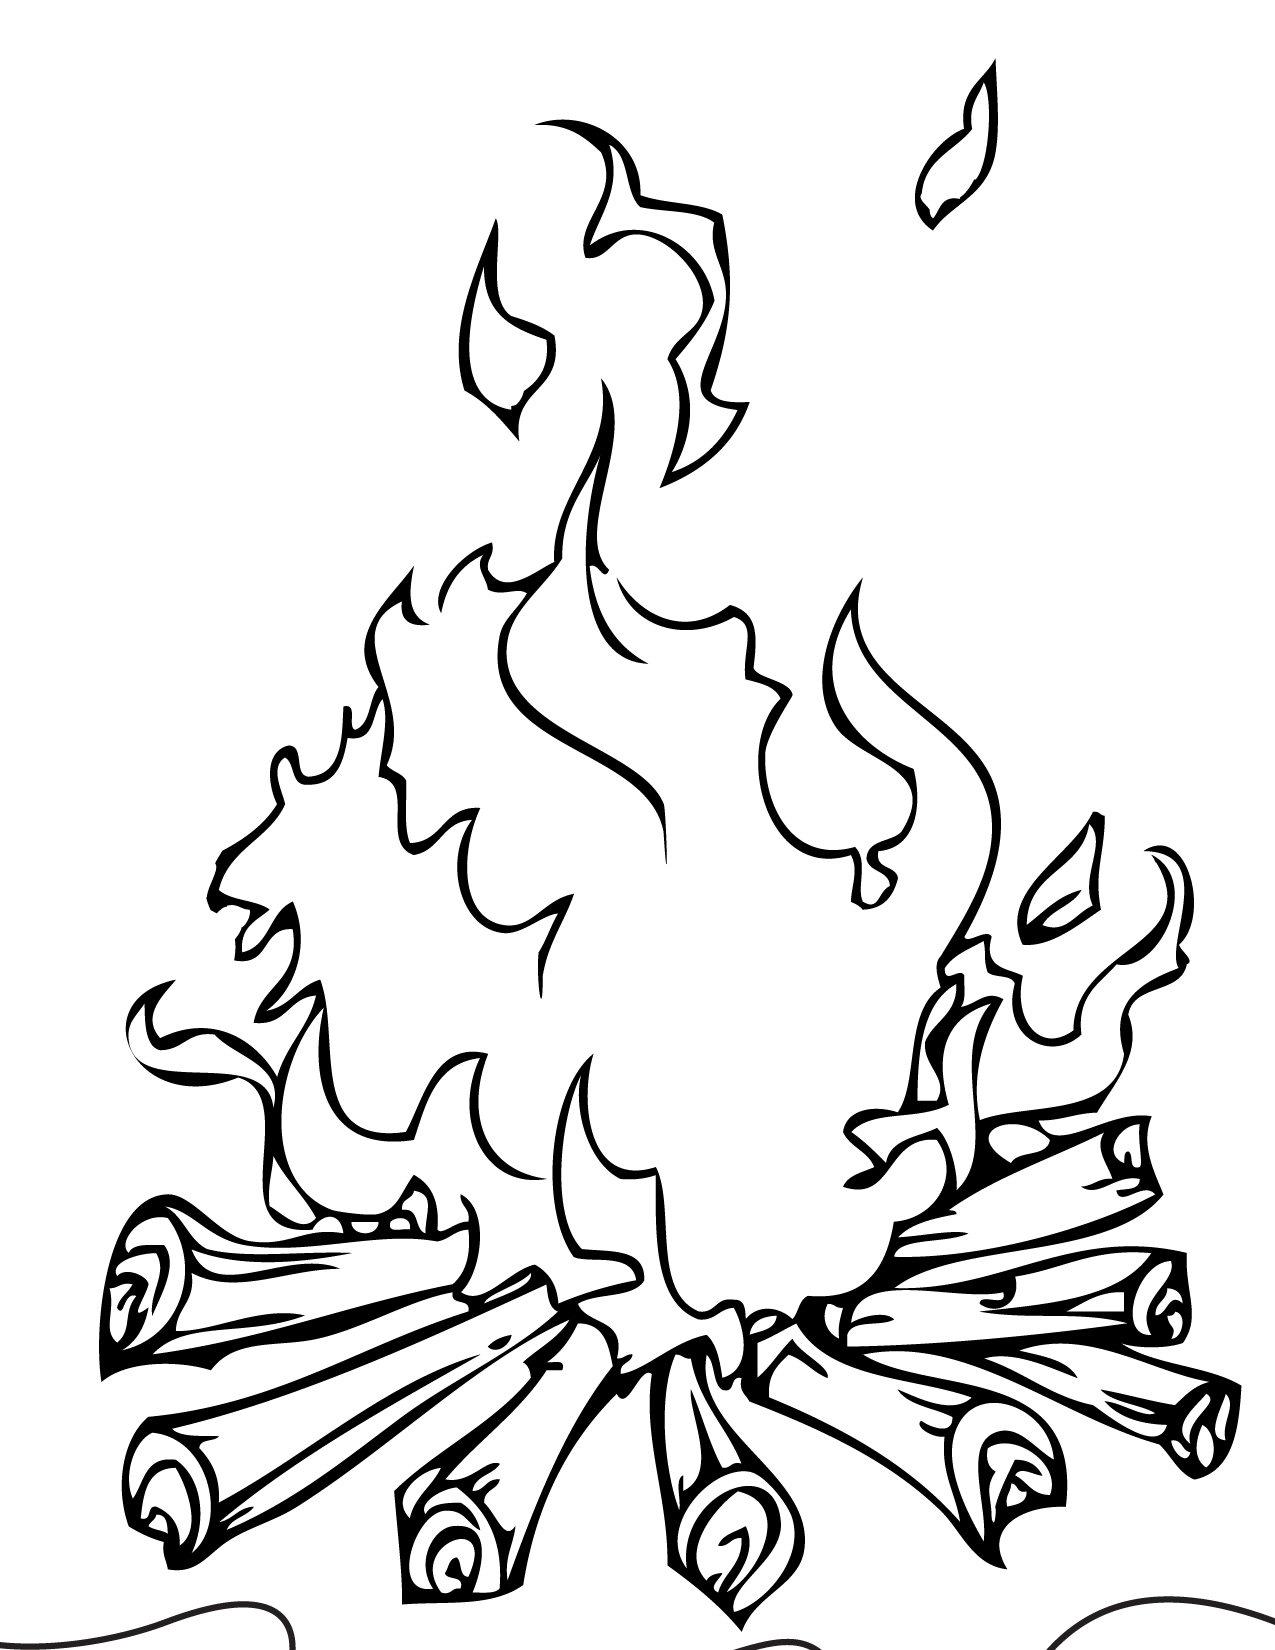 Coloring Cartoon Bonfire with Sausage, bonfire clip art black and.